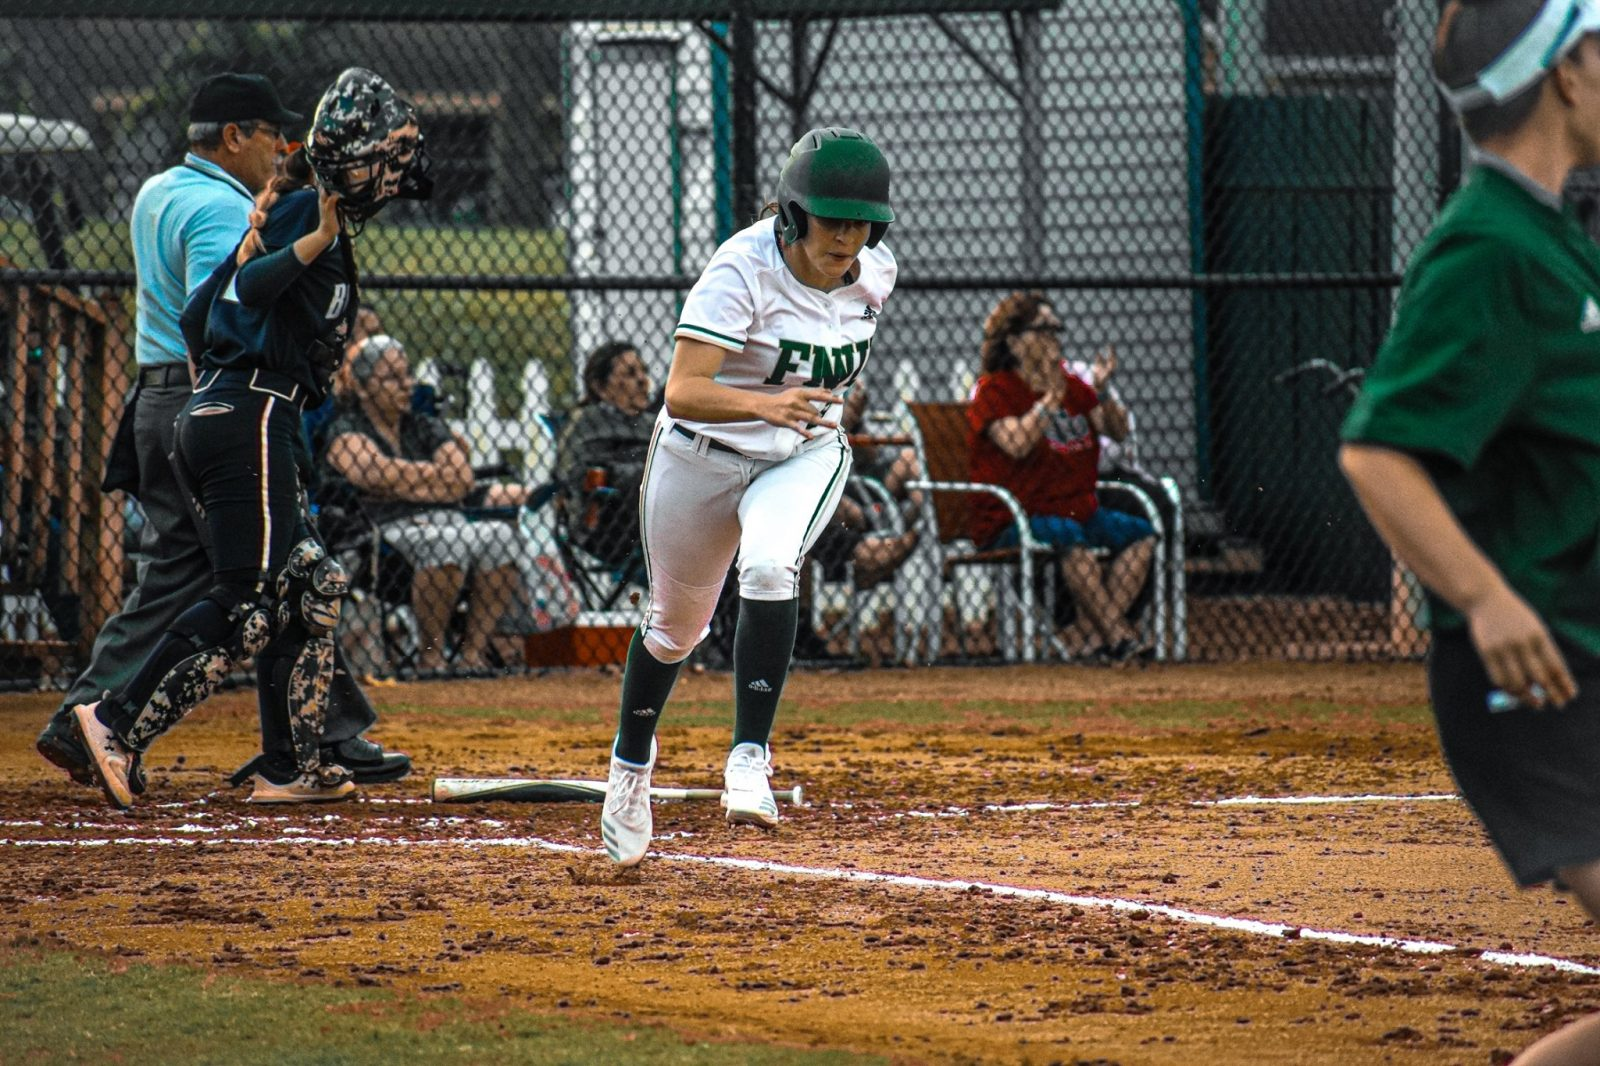 FNU softball player running in the game